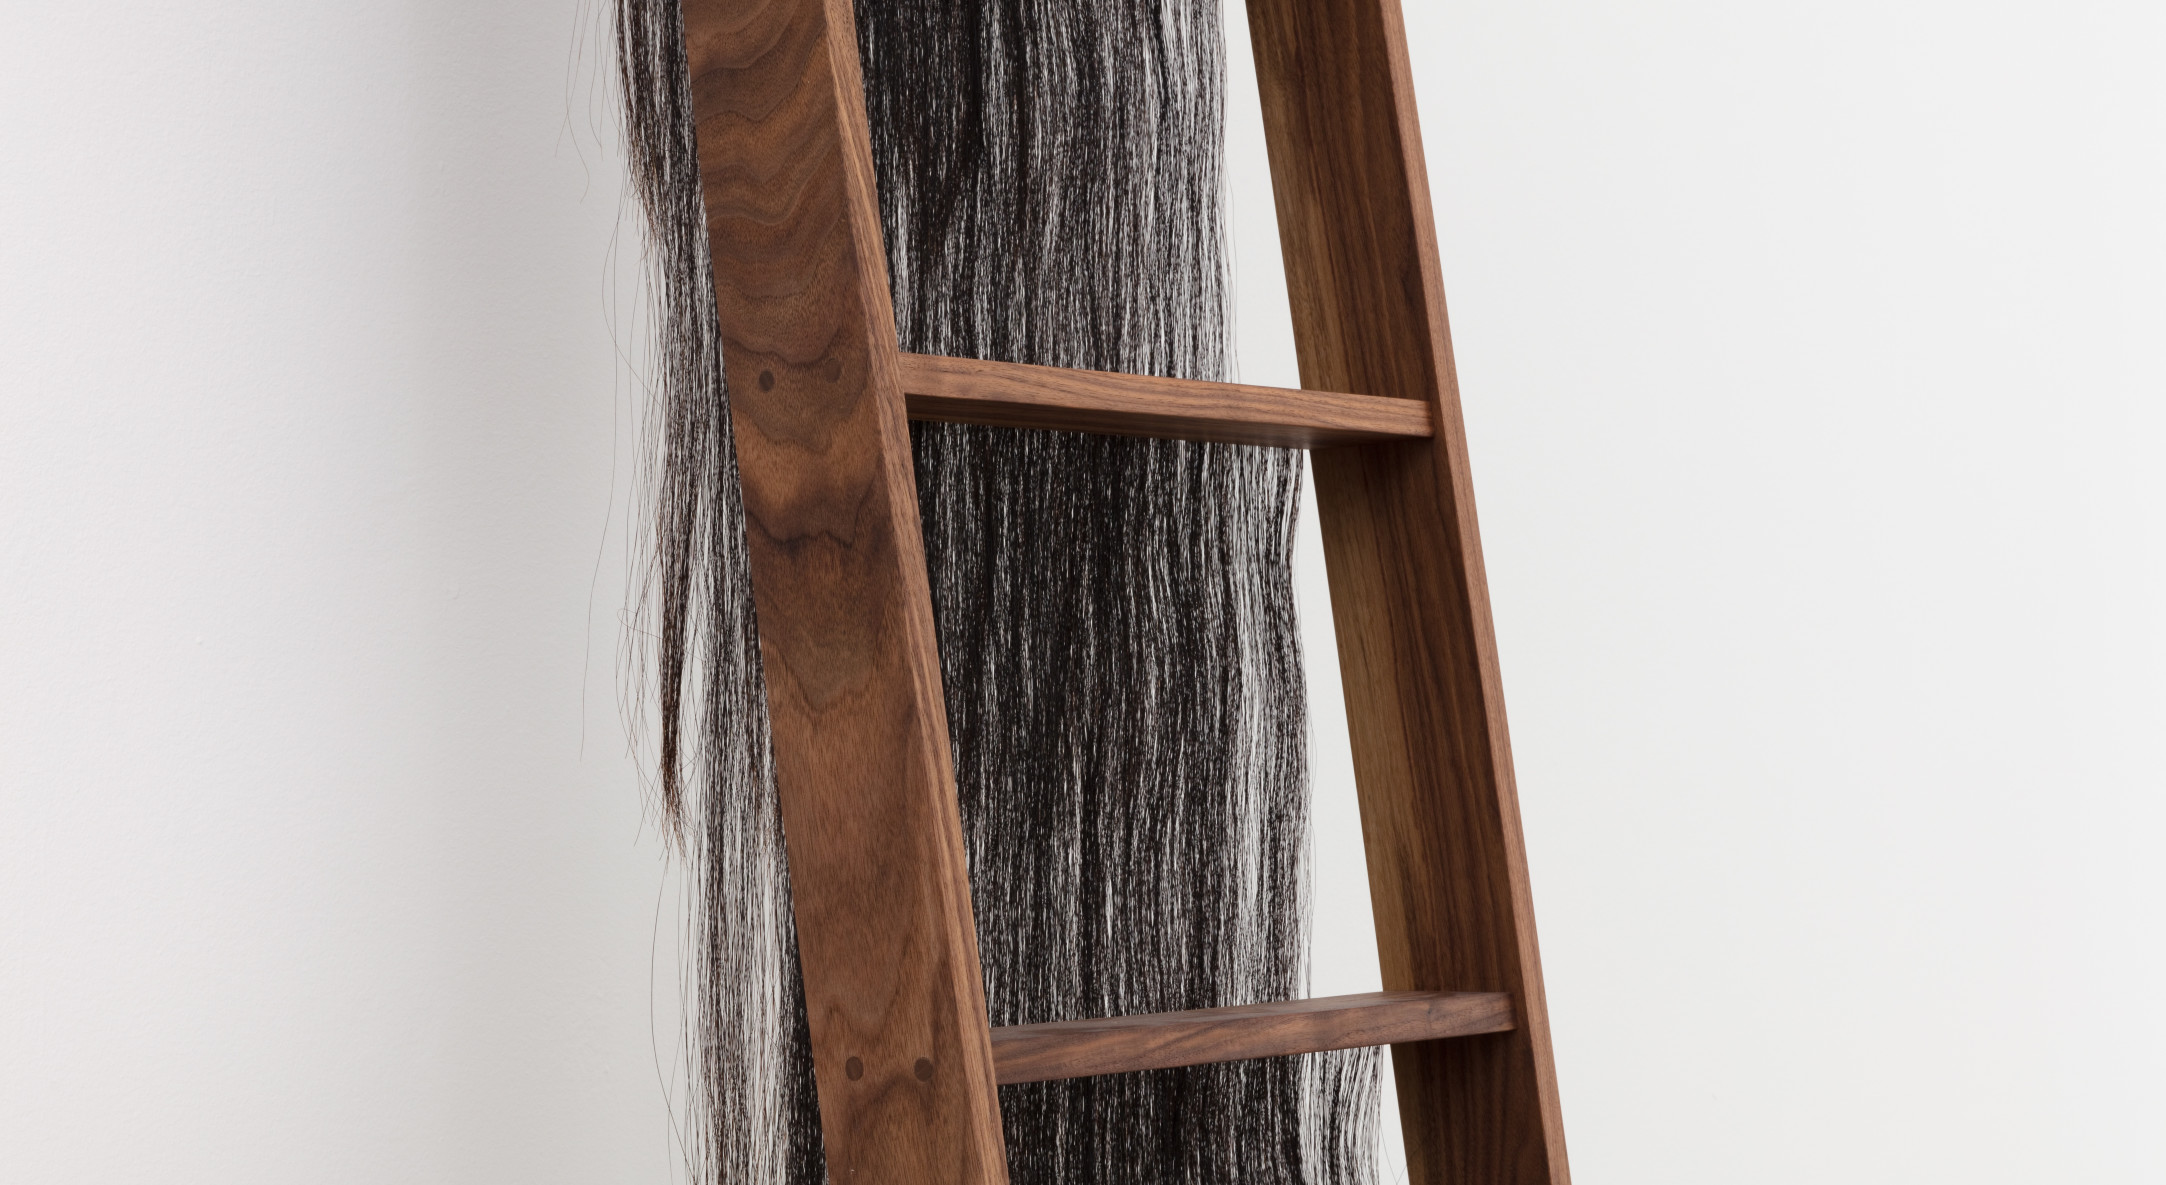 Detail of Andrea Geyer, If i told her #3, 2018, Walnut with horsehair, 315 x 44.5 cm, 124 1/8 x 17 1/2 in